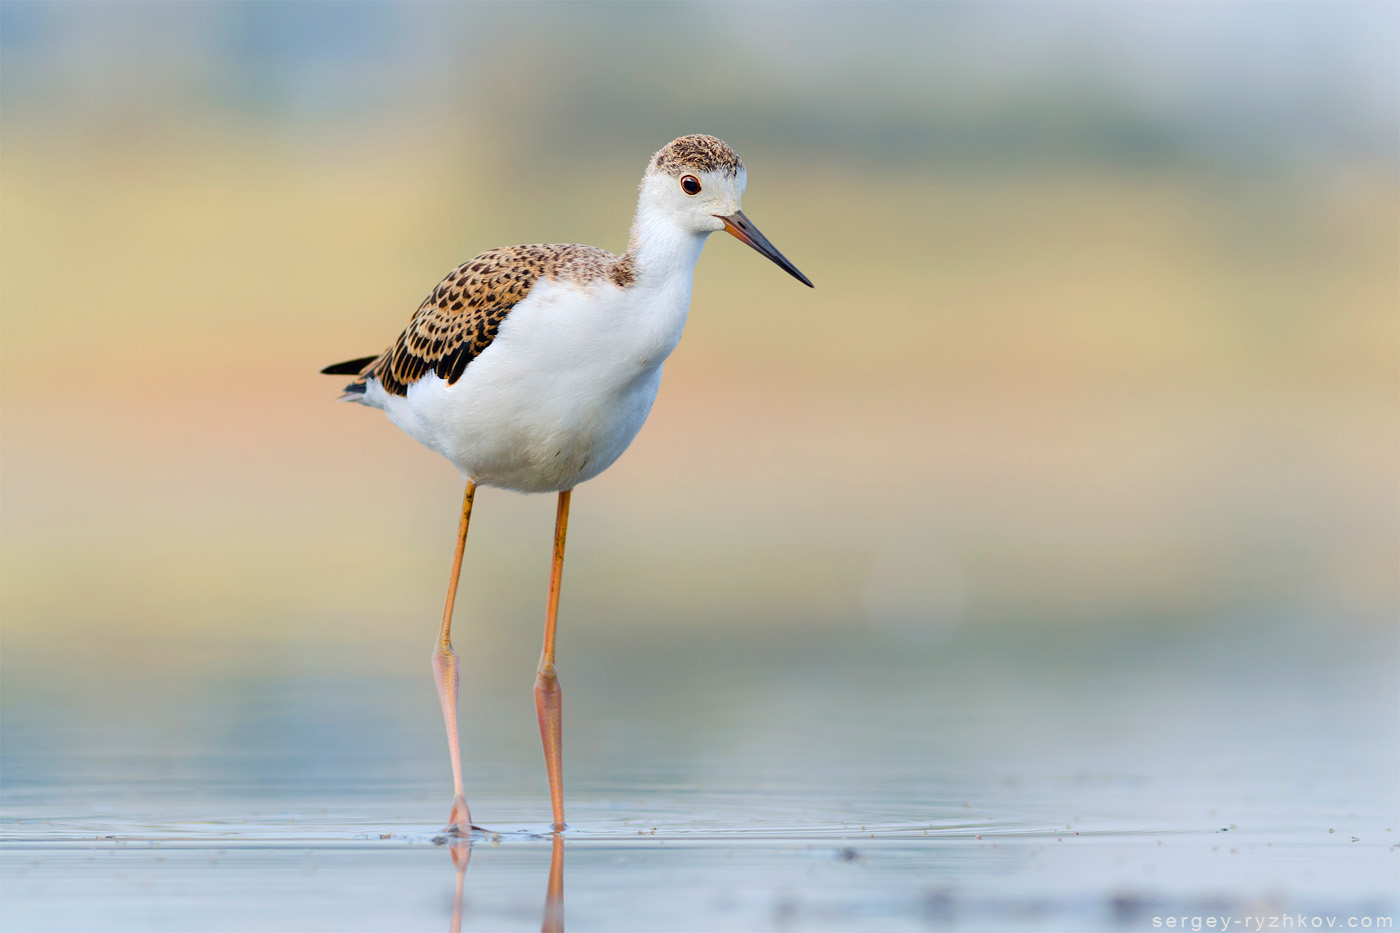 The black-winged stilt, common stilt, or pied stilt (Himantopus himantopus) is a widely distributed very long-legged wader in the avocet and stilt family (Recurvirostridae). Photo was taken in Ukraine.